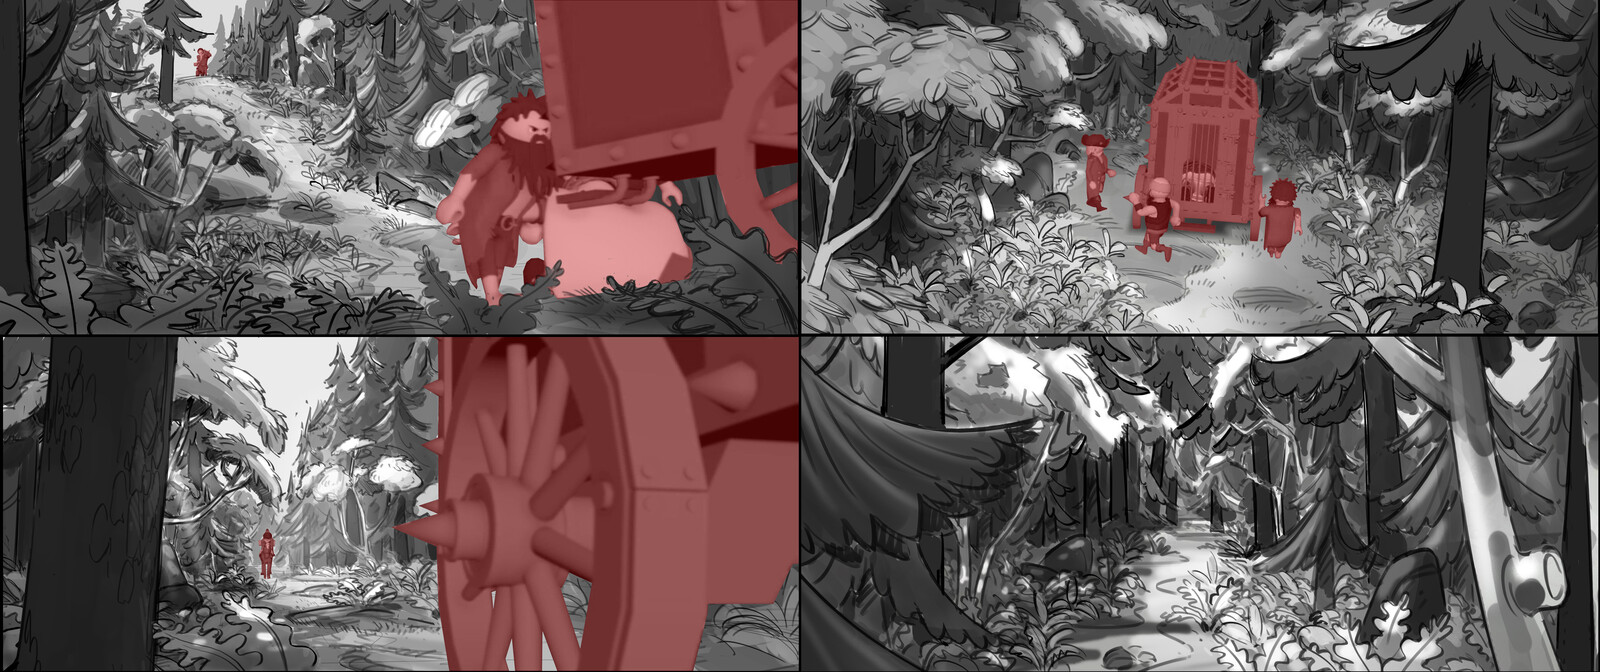 Layout based rough forest concepts.